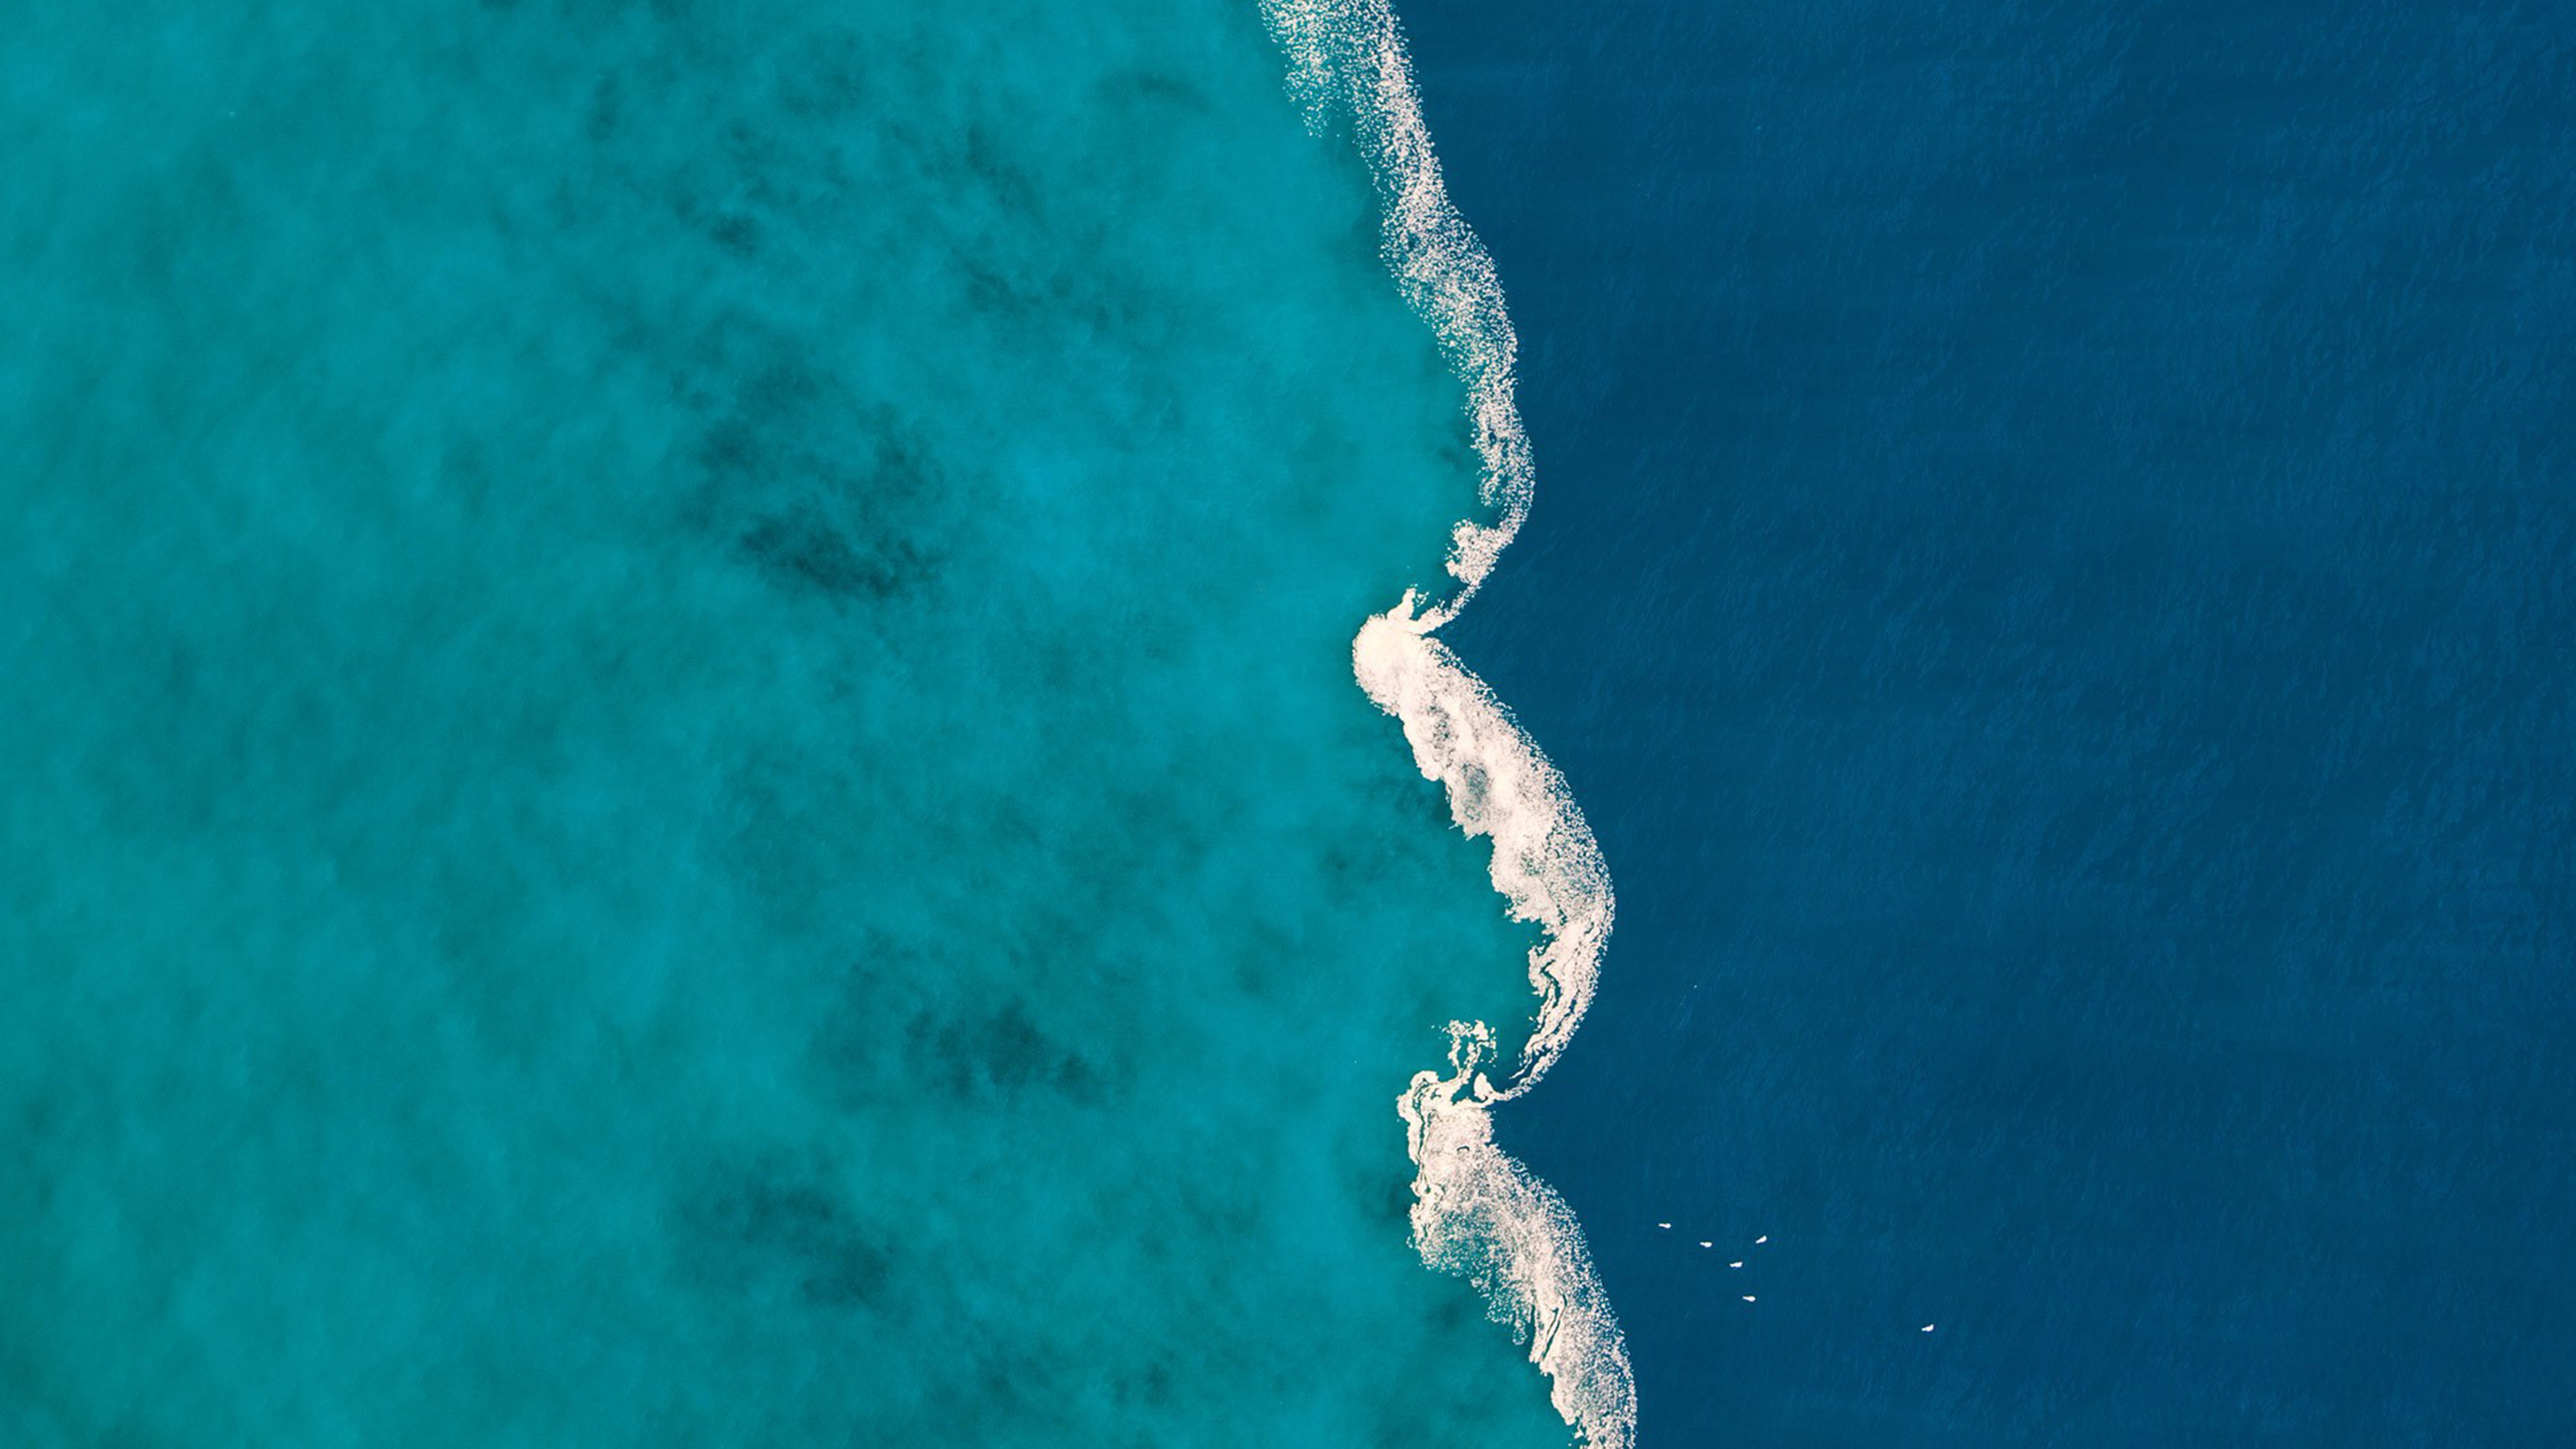 aerial blue ocean 4k 1540132754 - Aerial Blue Ocean 4k - ocean wallpapers, nature wallpapers, hd-wallpapers, 4k-wallpapers